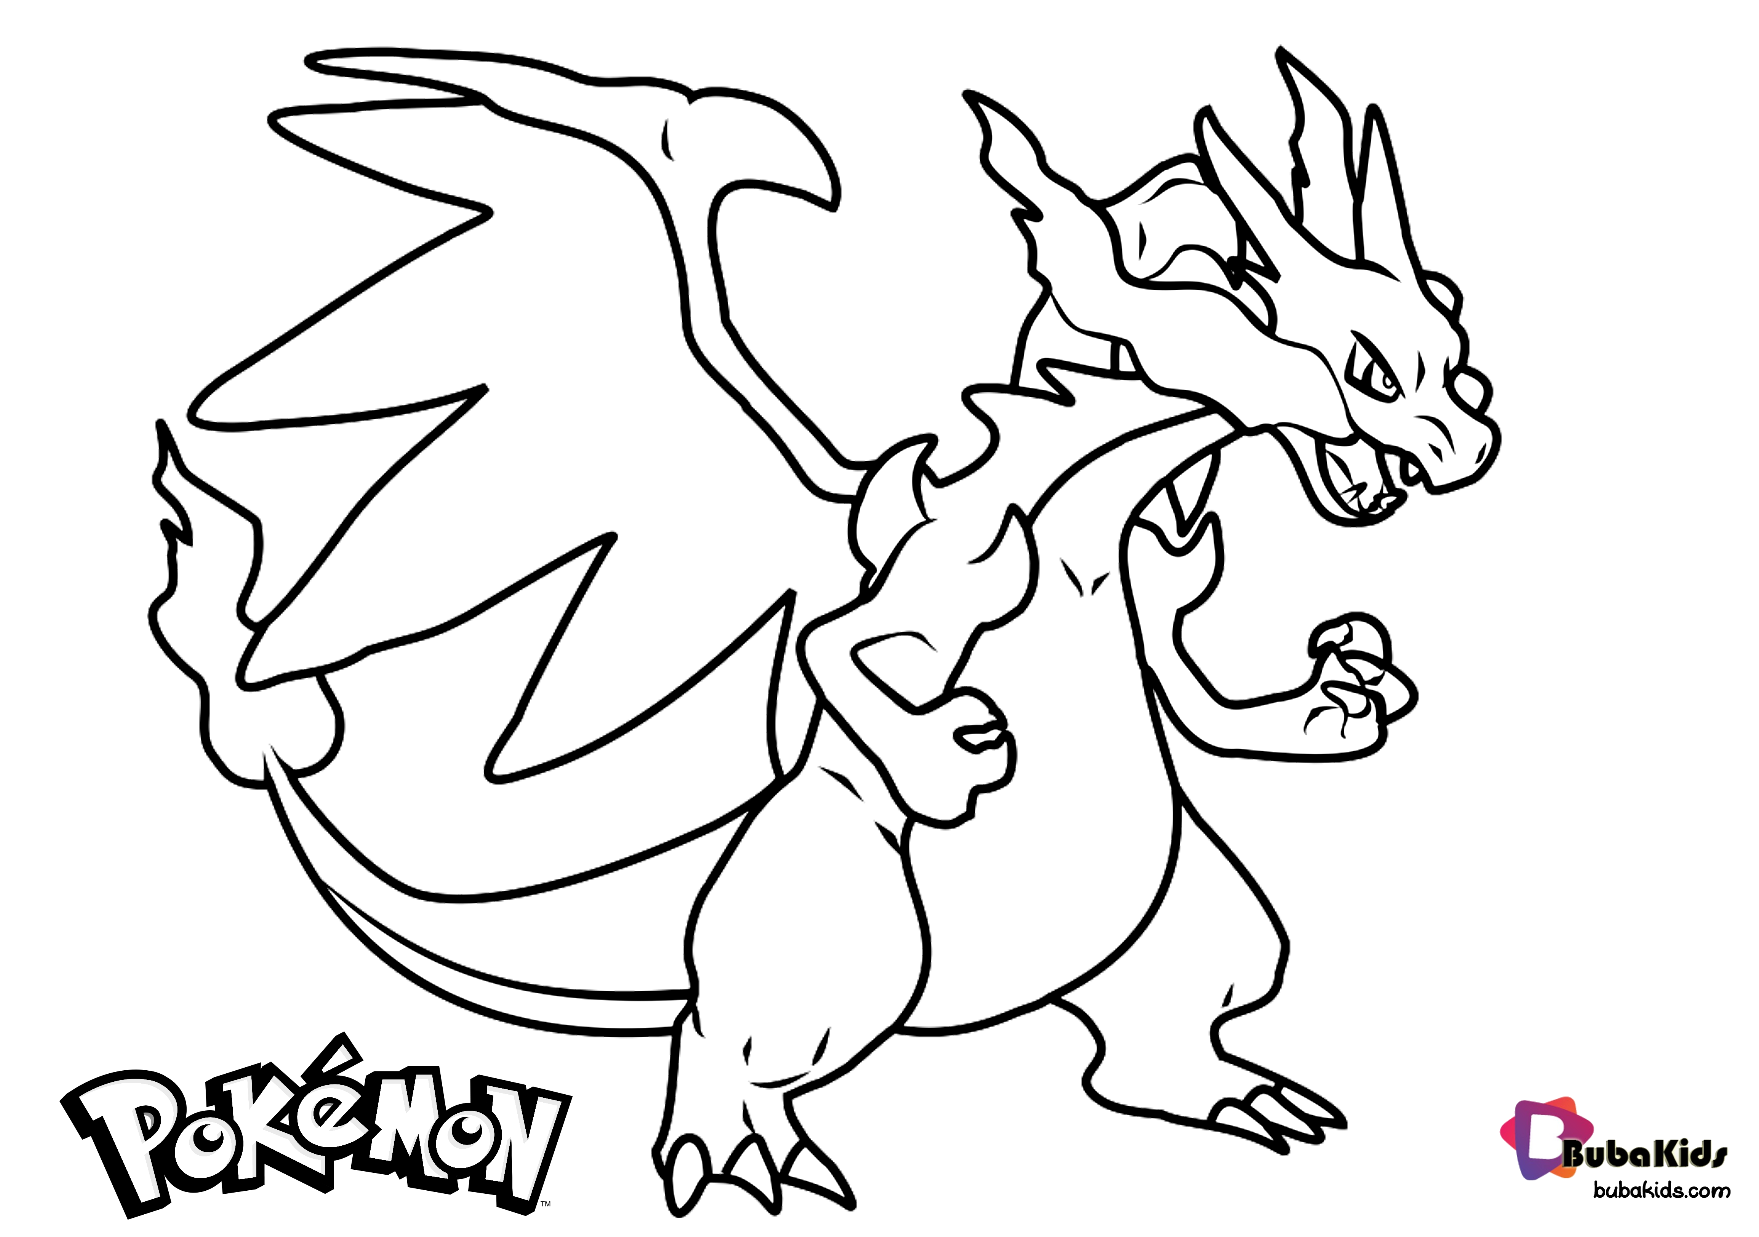 Free Download Pokemon Charizard Coloring Page Collection Of Cartoon Coloring Pages For Teenage Pr Coloring Pages Cartoon Coloring Pages Pokemon Coloring Pages [ 1237 x 1759 Pixel ]